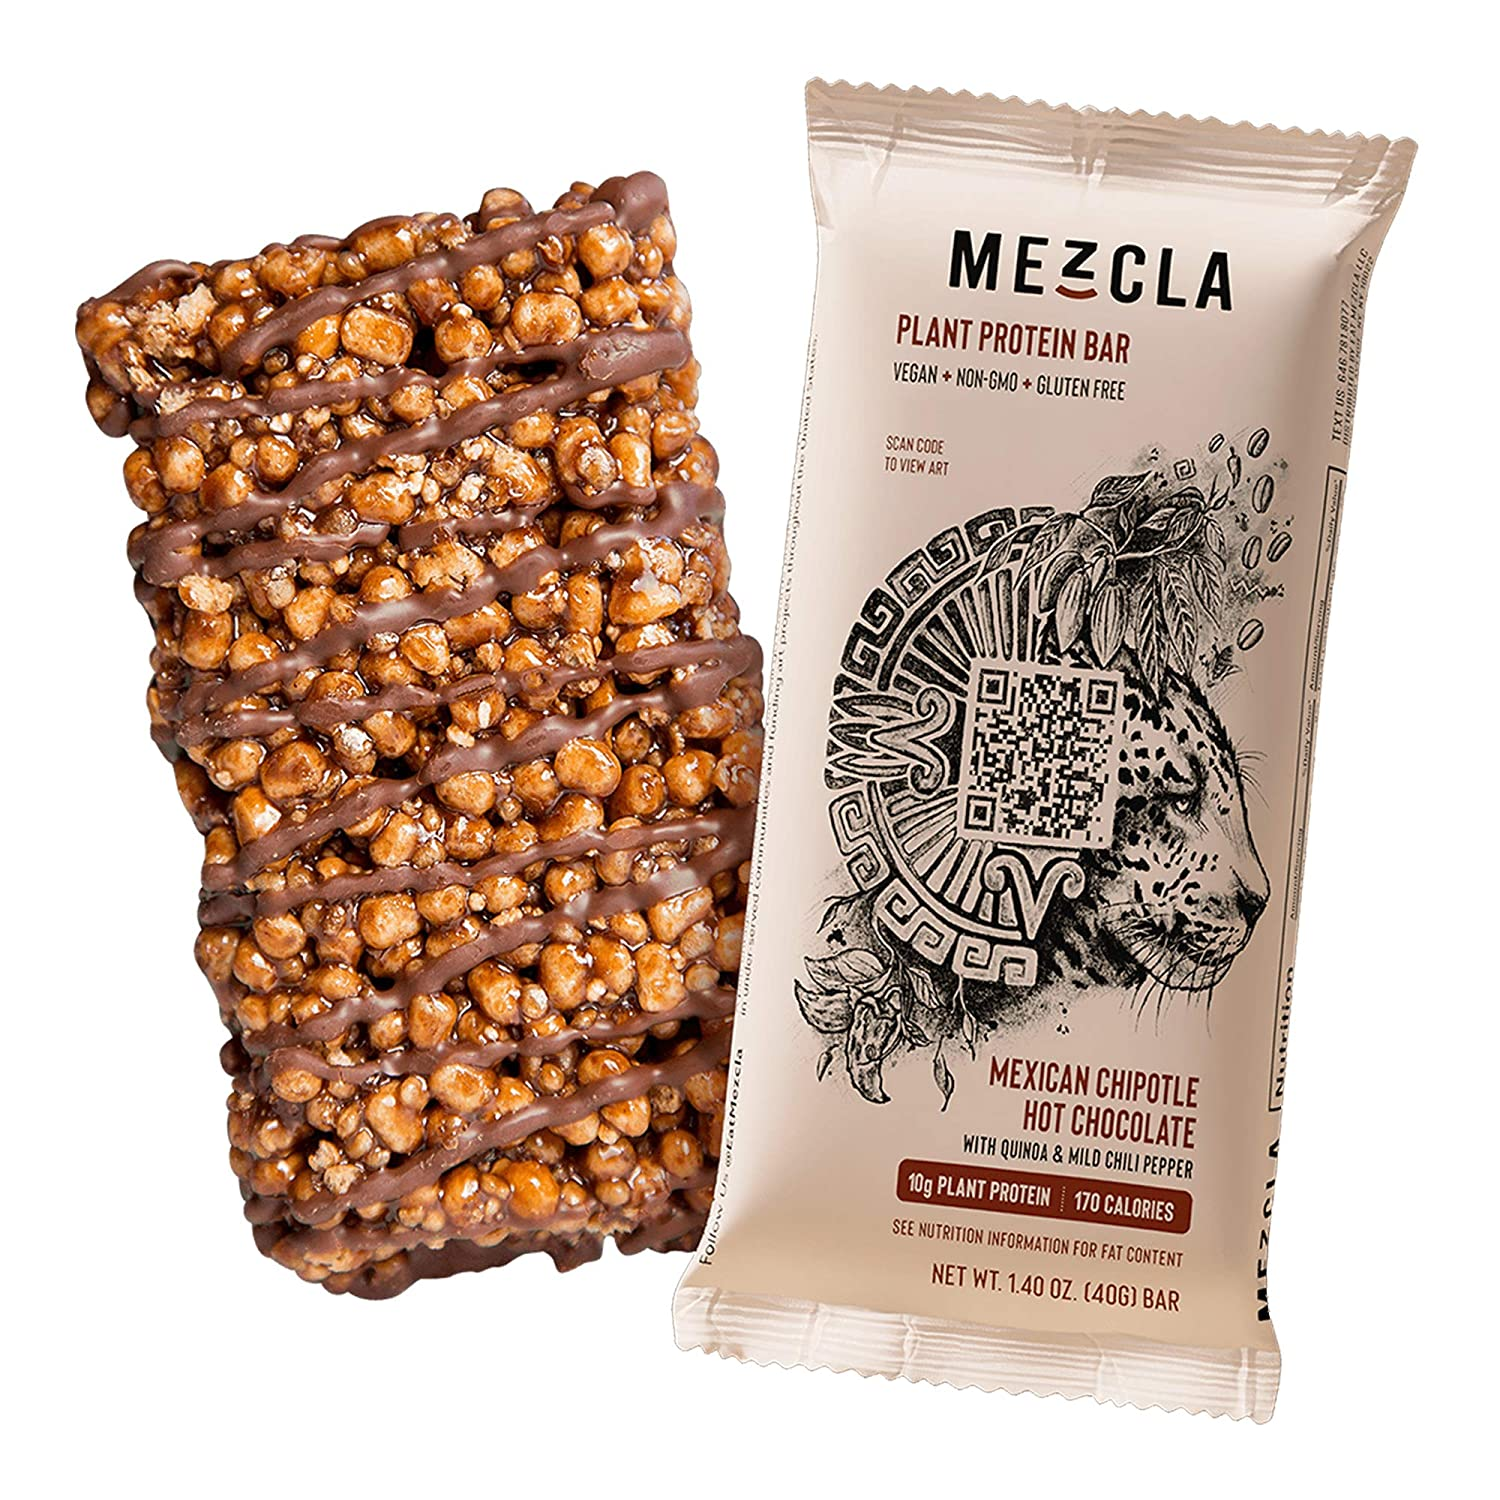 Mezcla Vegan Plant Protein Bars - Mexican Hot Chocolate: Premium Ingredients, Delicious Flavor, 10G of Protein, Gluten-Free, Non-GMO, Soy Free [15-Pack]